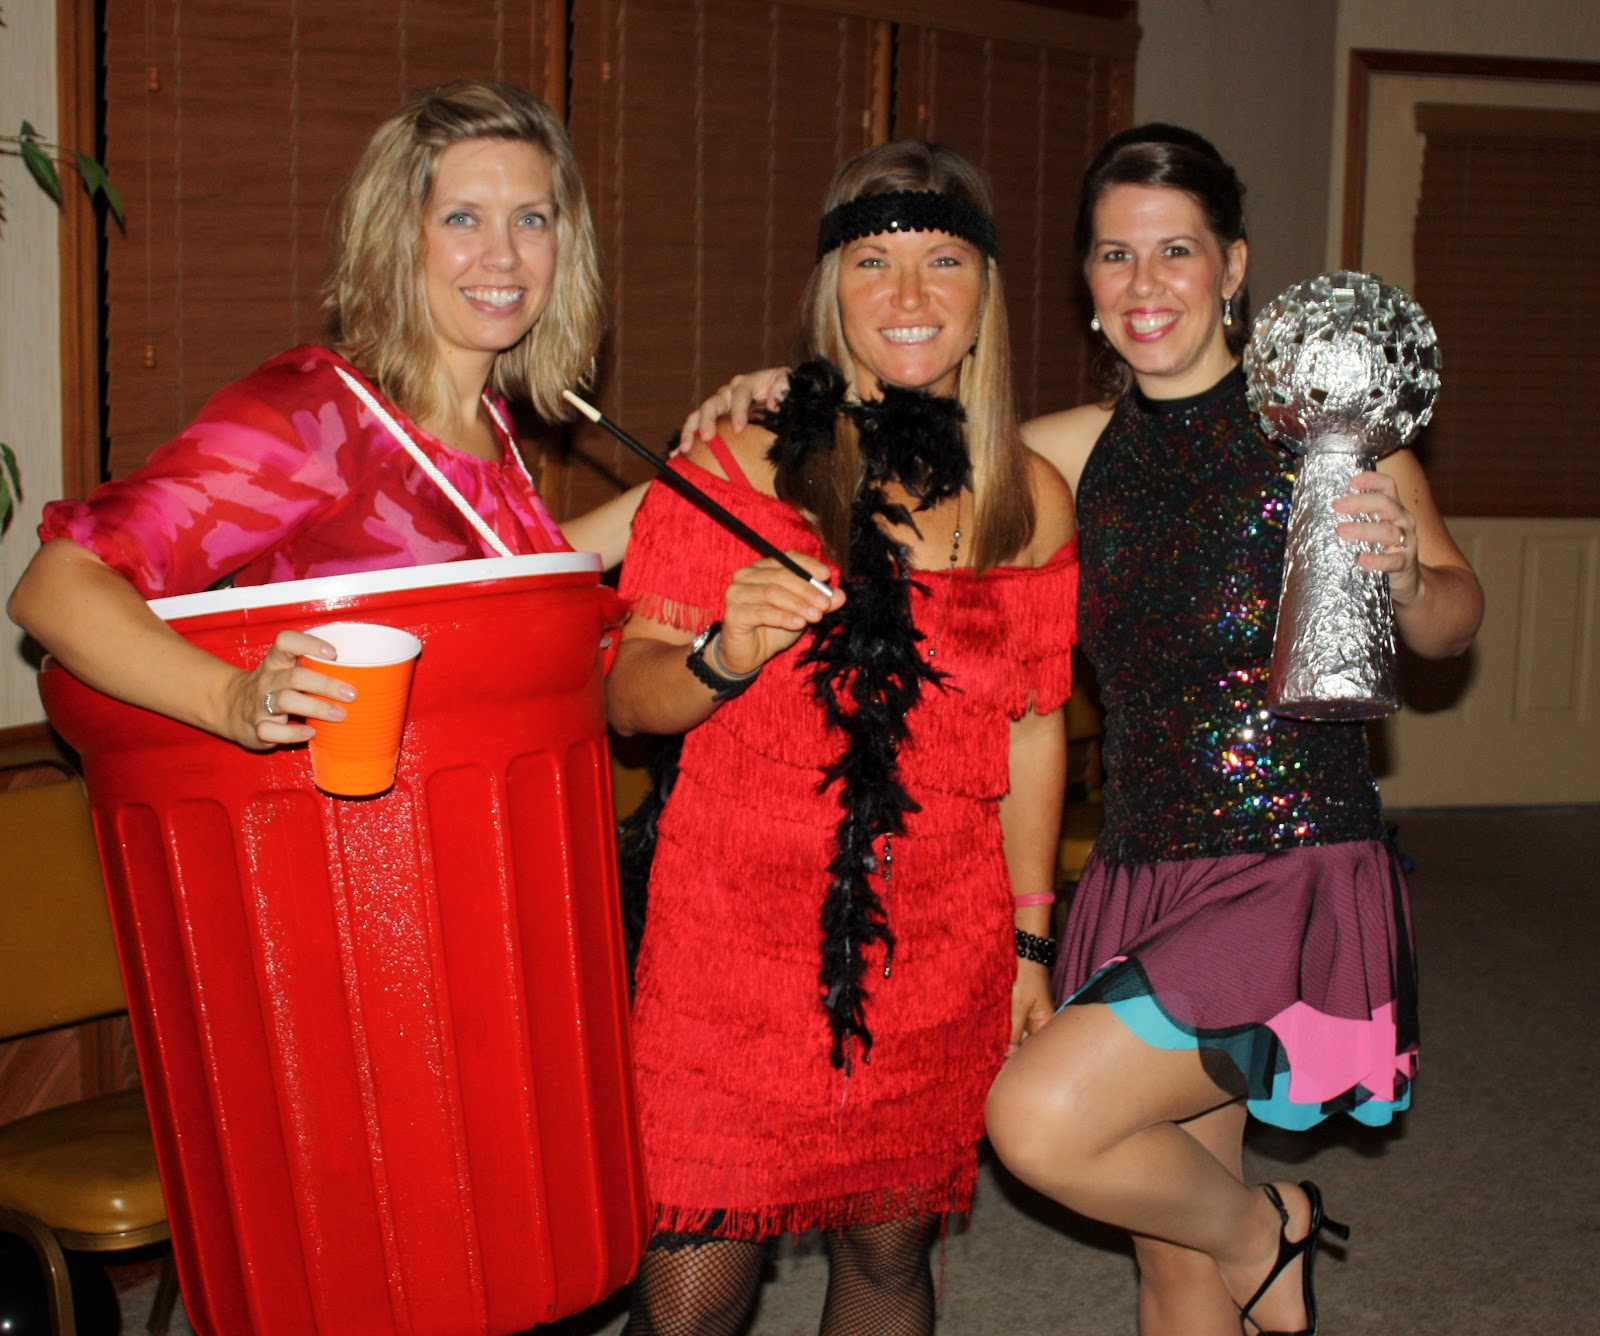 Red Solo Cup Costume Walmart Red Solo Cup Costume